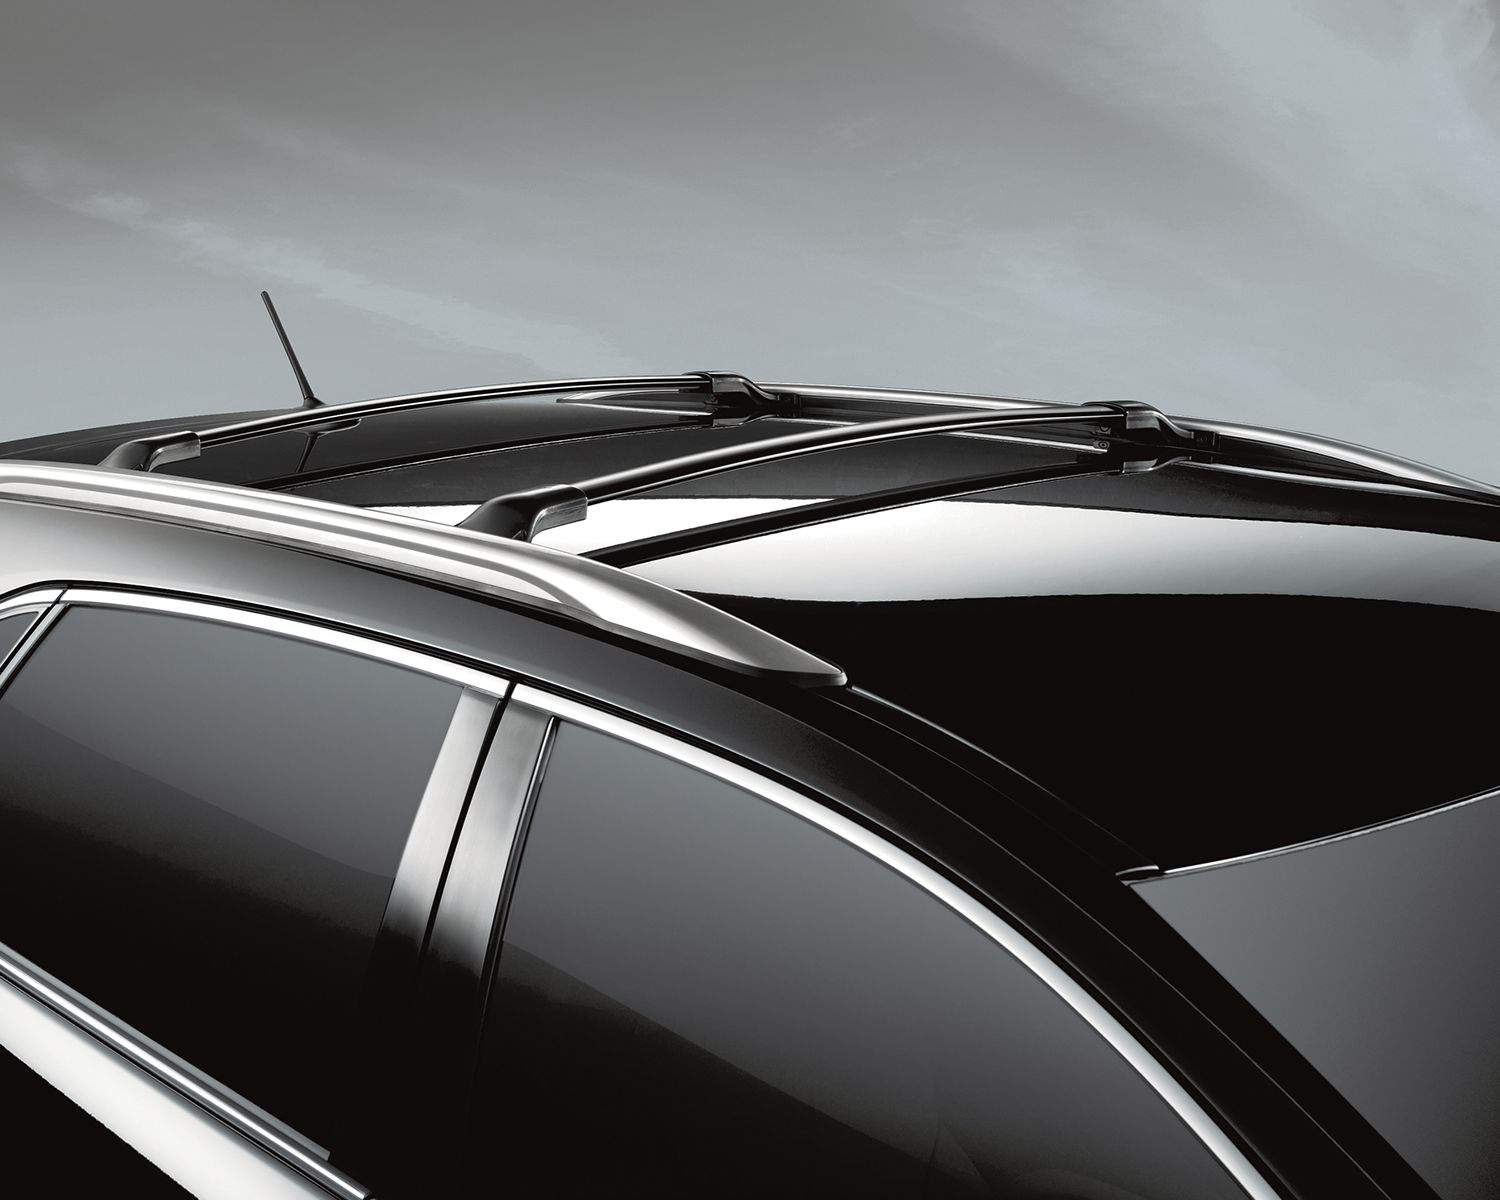 Venza in Midnight Black Metallic with Accessory Roof Rack